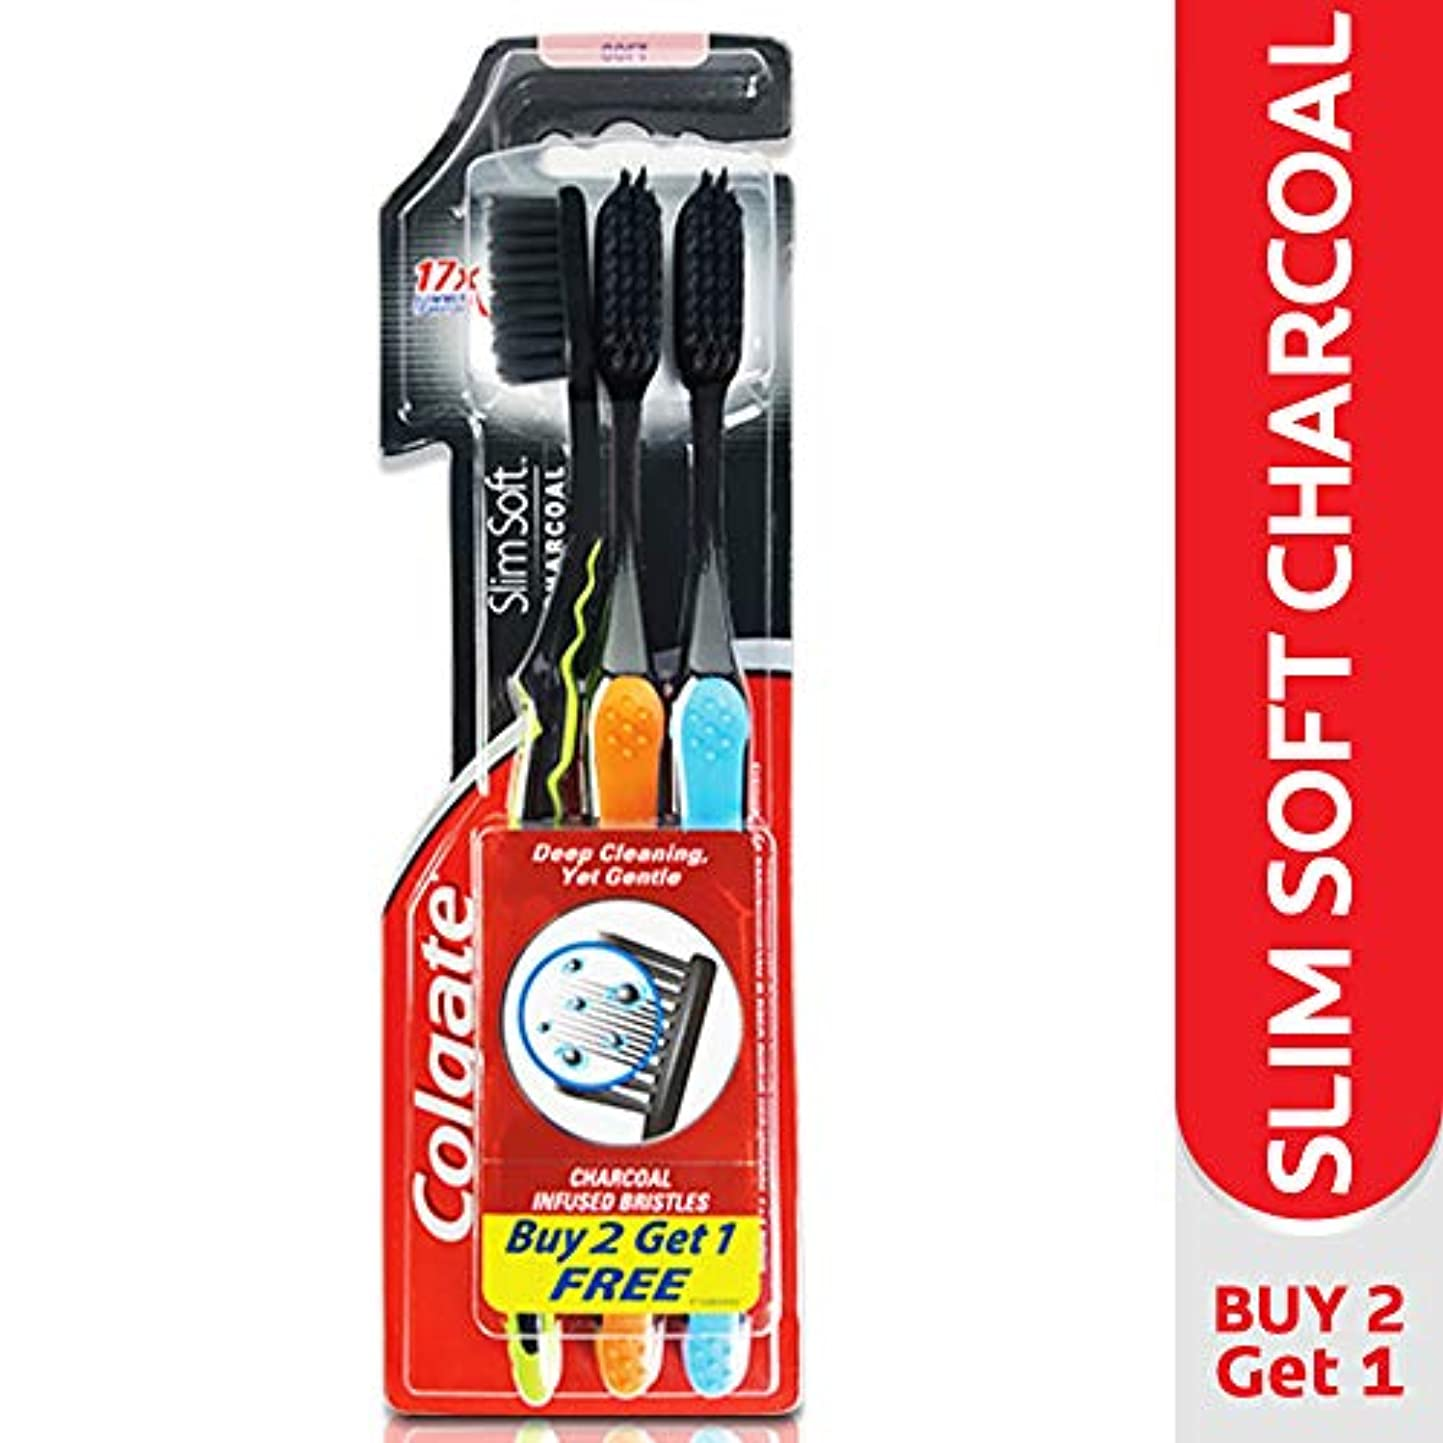 区別するチームエゴマニアColgate Slim Soft Charcoal Toothbrush (Pack of 3) 17x Slimmer Soft Tip Bristles (Ship From India)